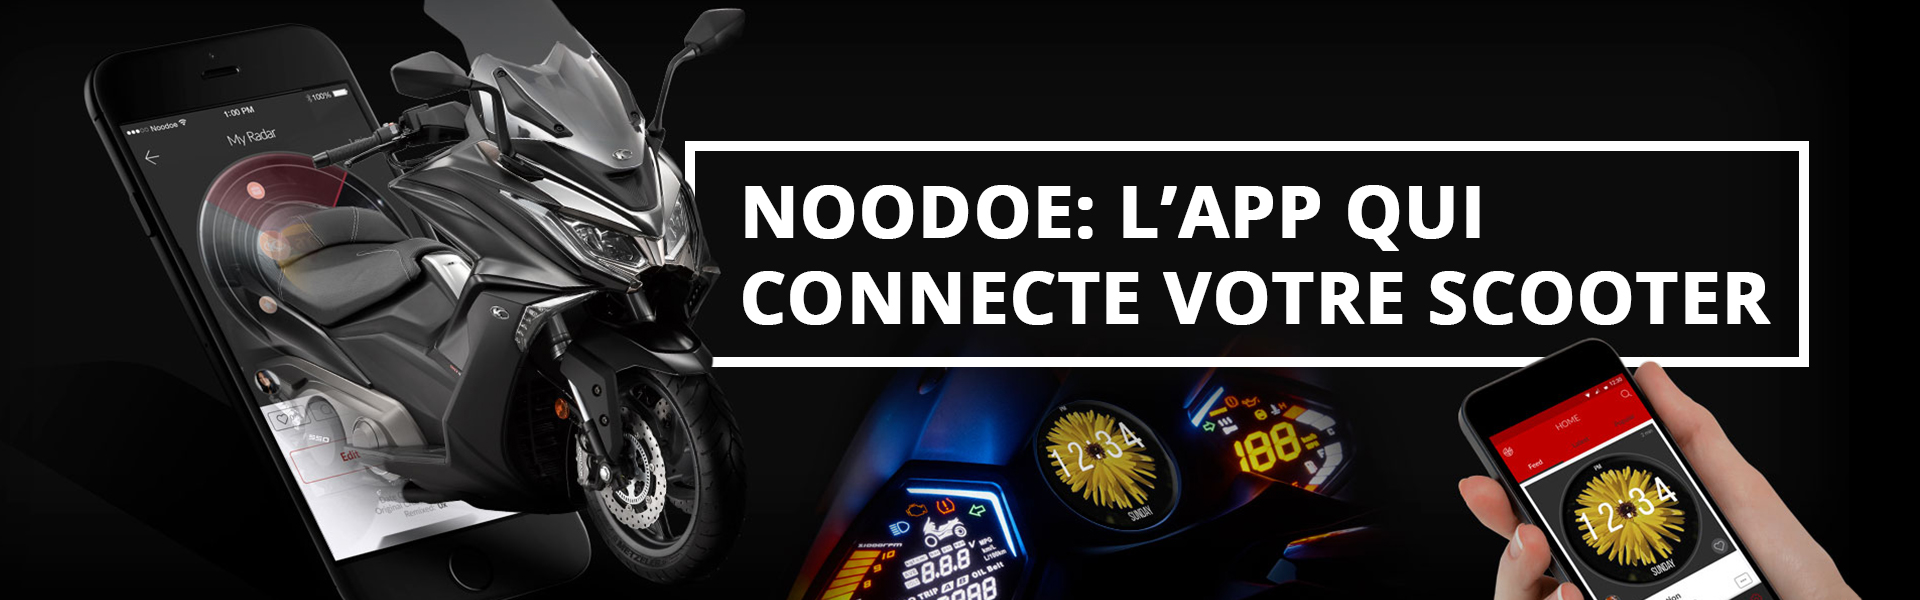 noodoe-app-connecte-scooter